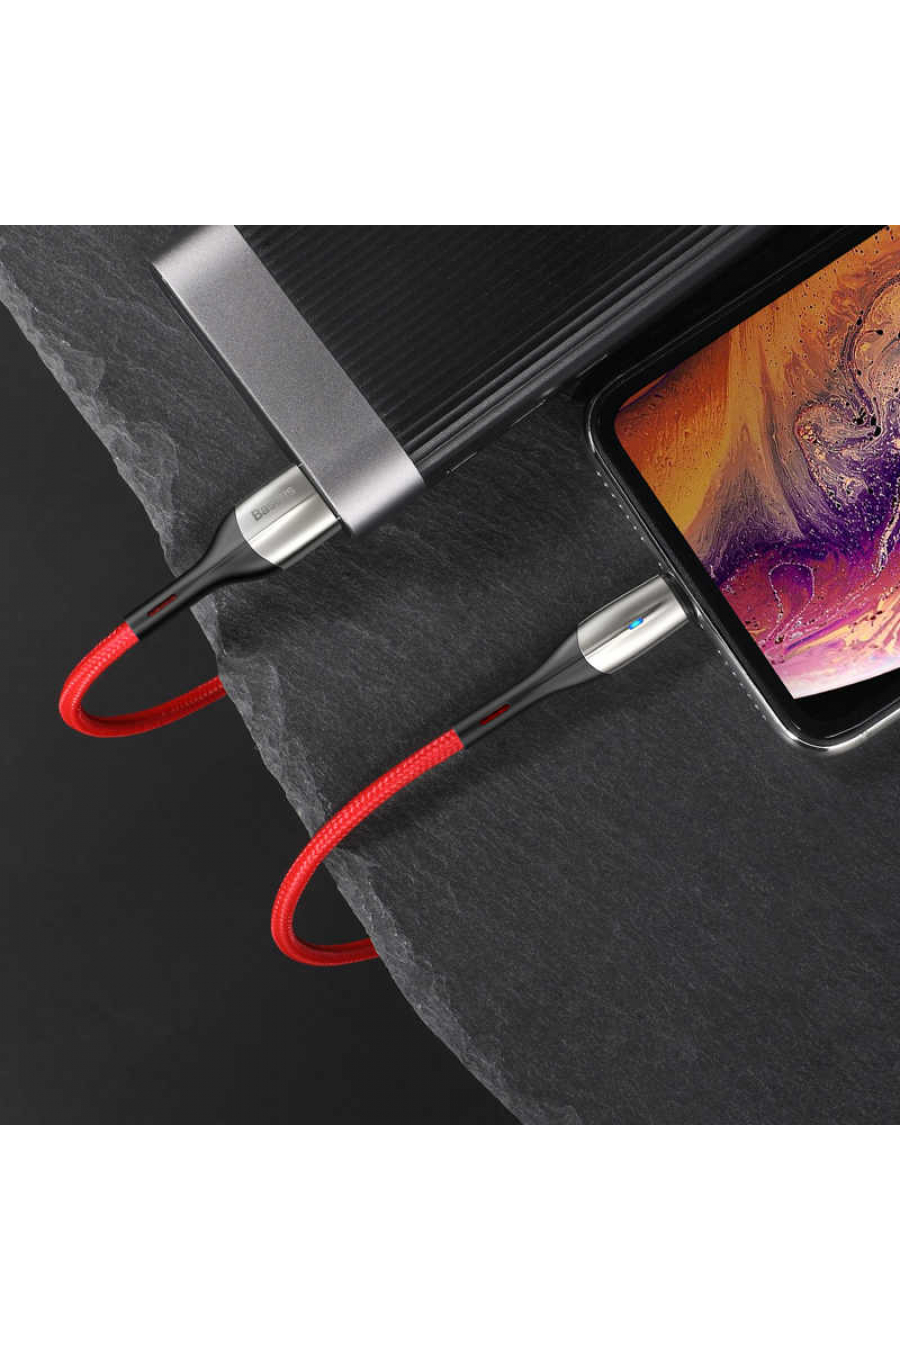 Baseus Horizontal Data Cable (With An İndicator Lamp) USB For IPhone 2.4A 1M